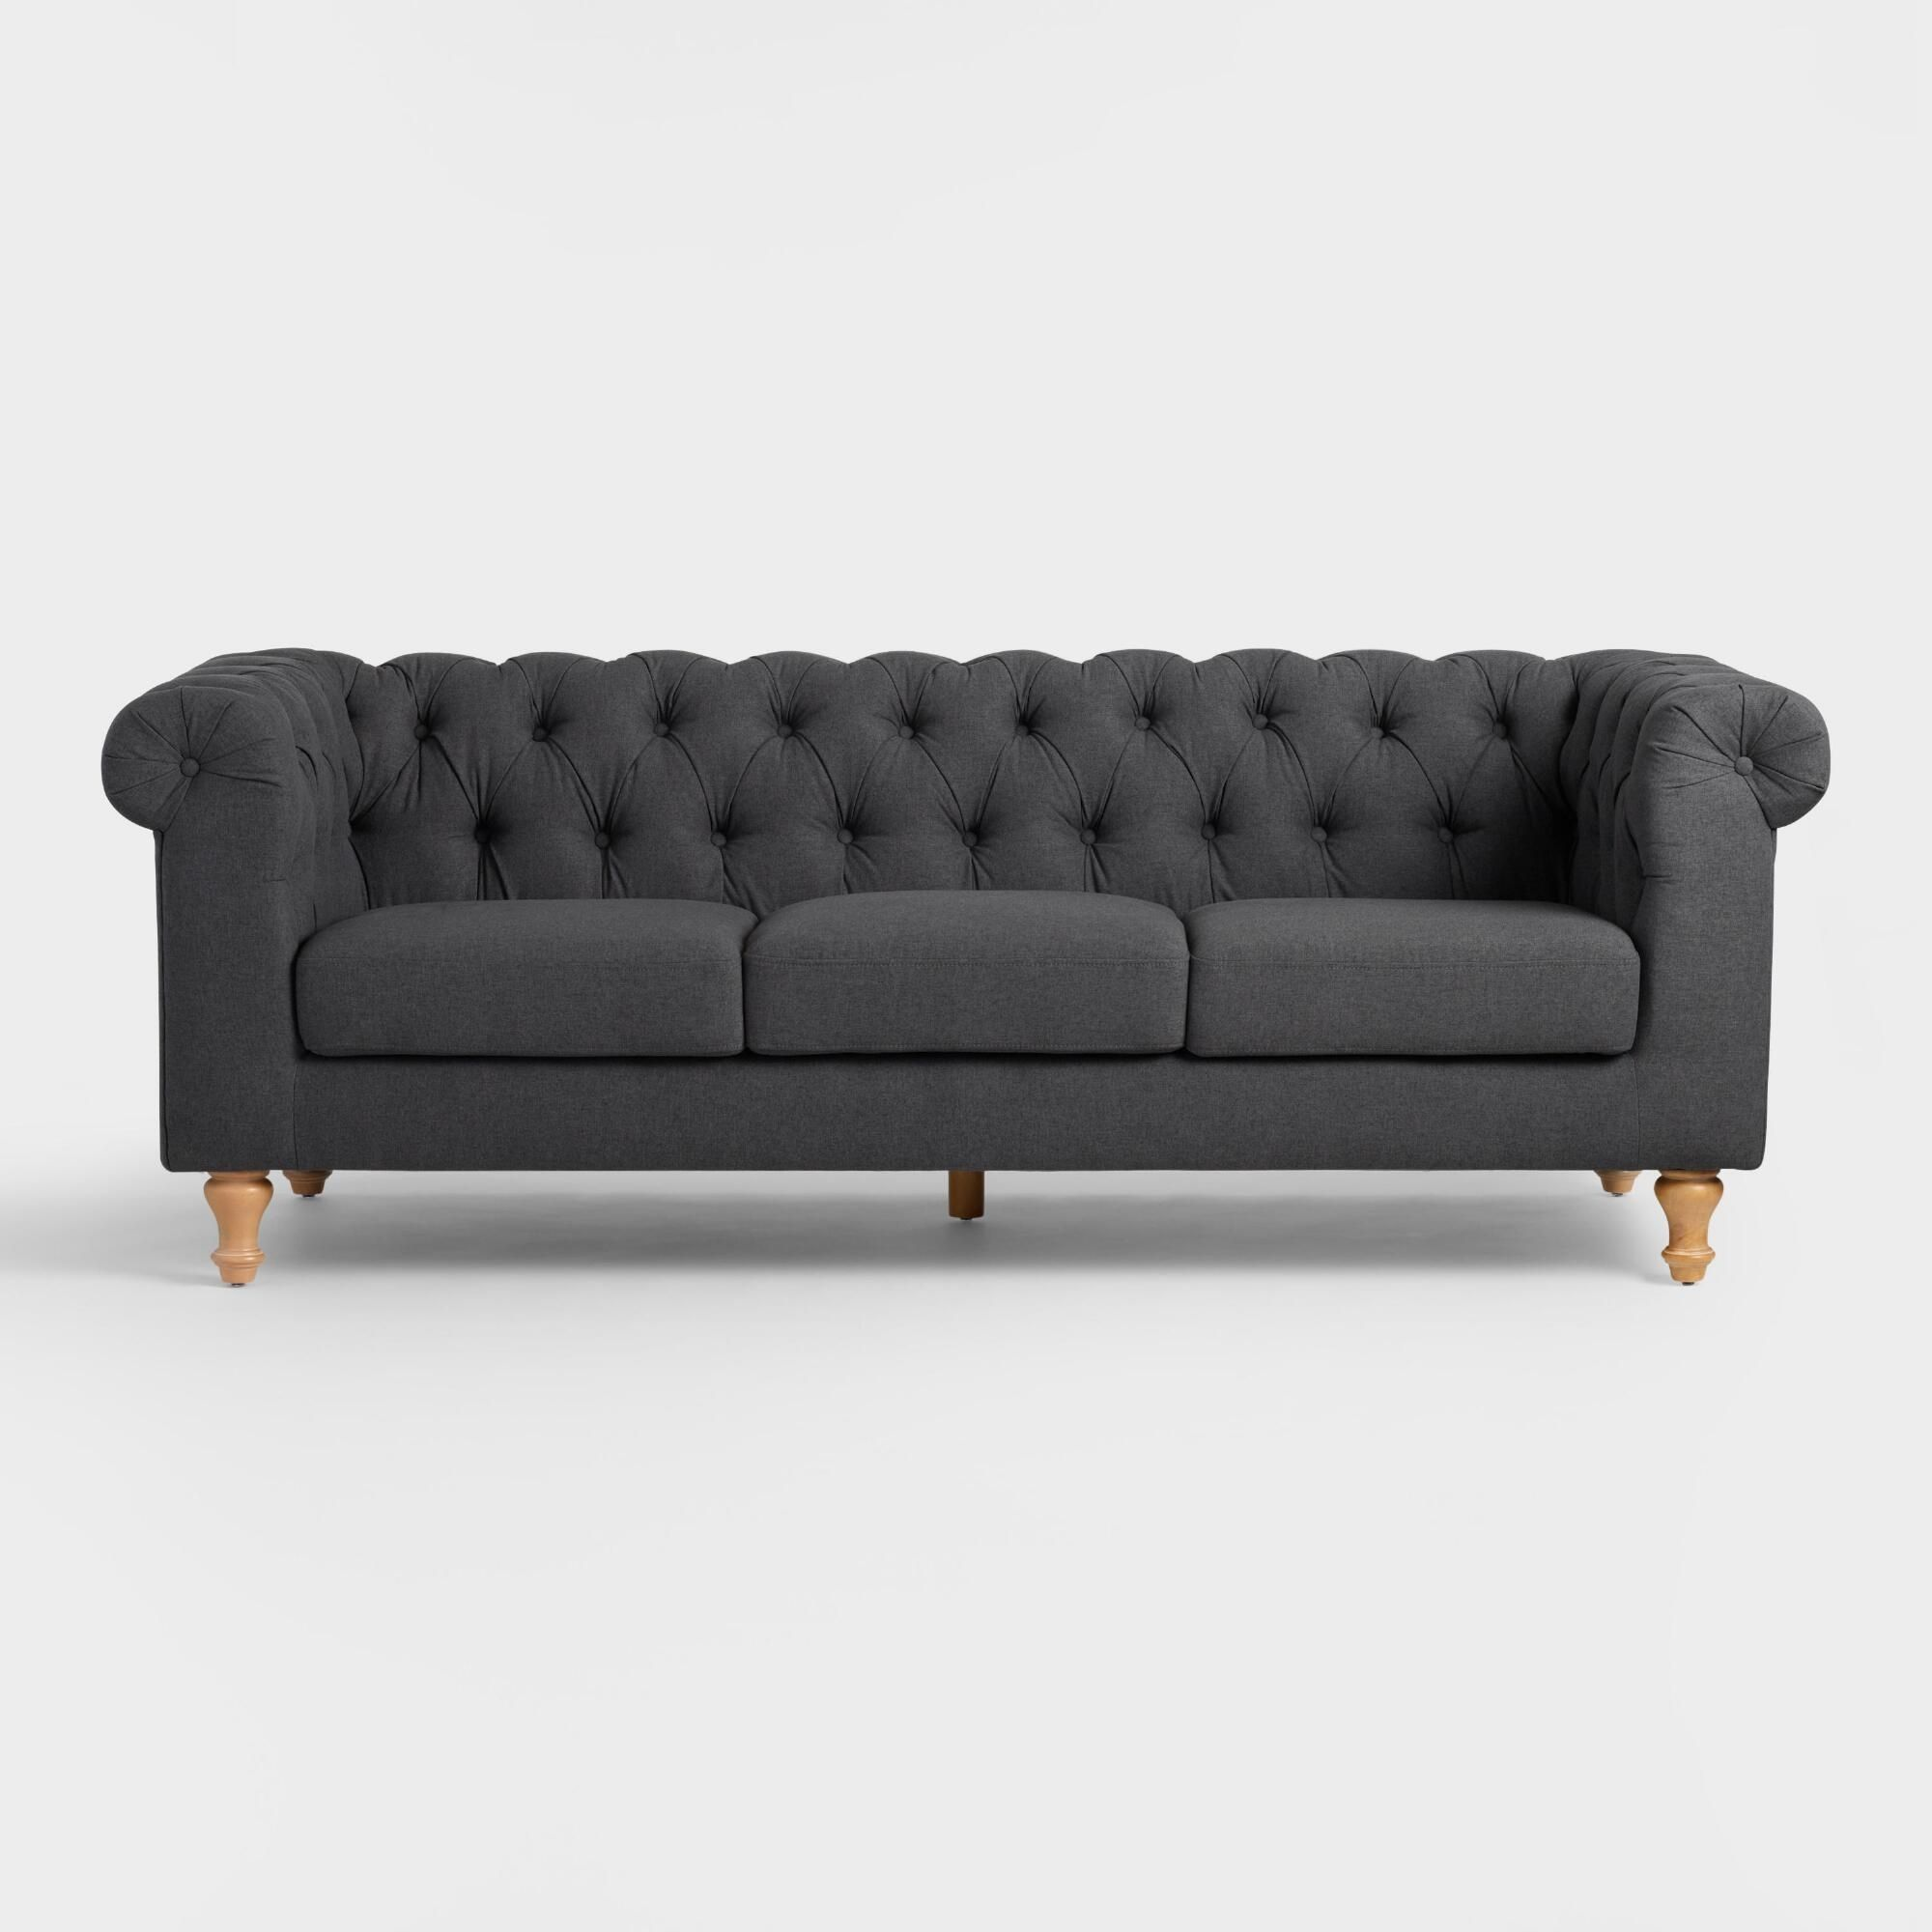 Sofa Beds Under 200 With Images Chesterfield Sofa Living Room